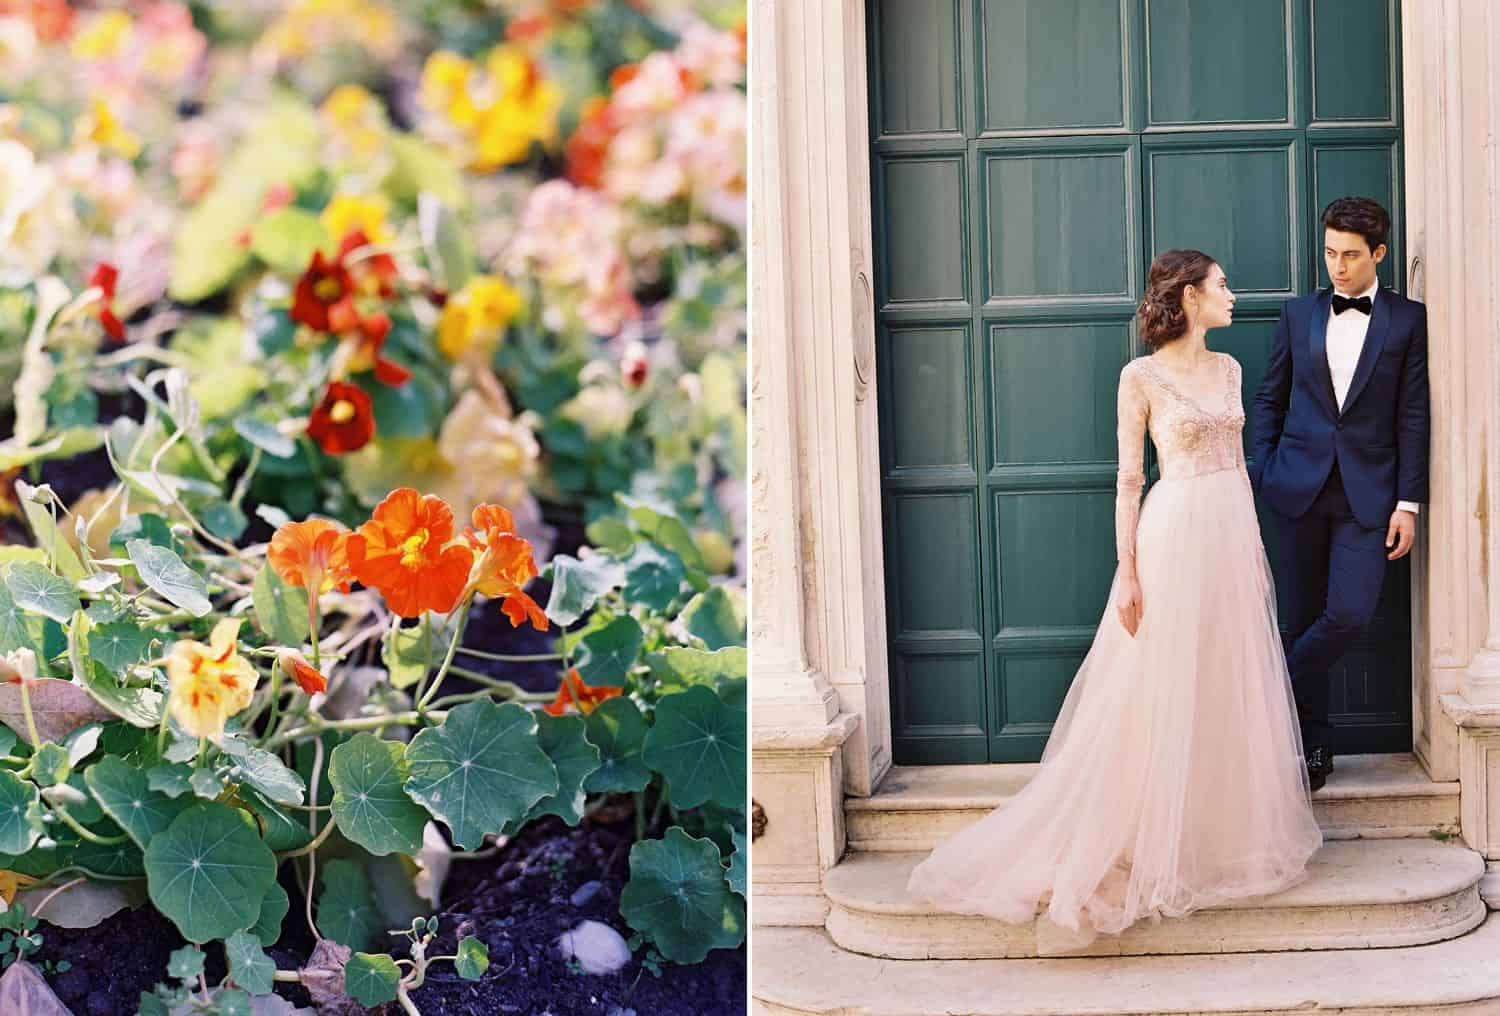 A field of colorful flowers is pictures beside a bride in a pink dress who stands in front of a green door with her groom.